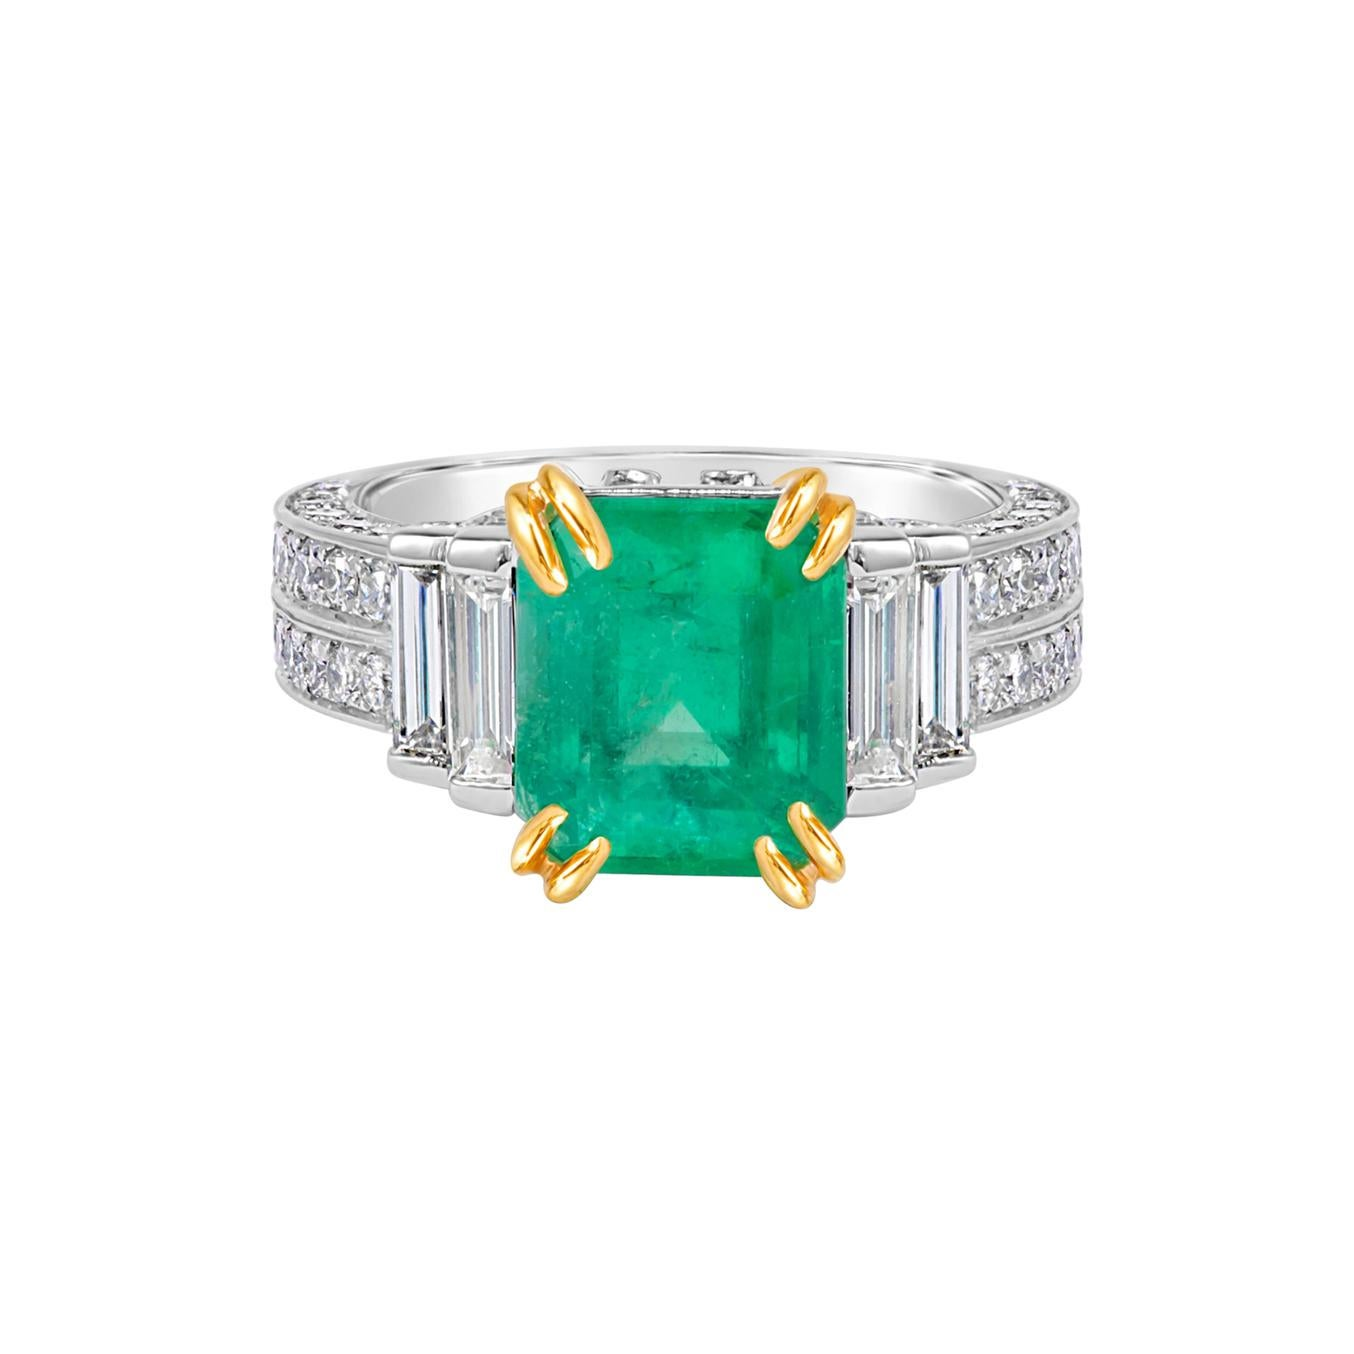 GIA Certified 3.60 Carat Natural Colombian Emerald Platinum Cocktail Ring